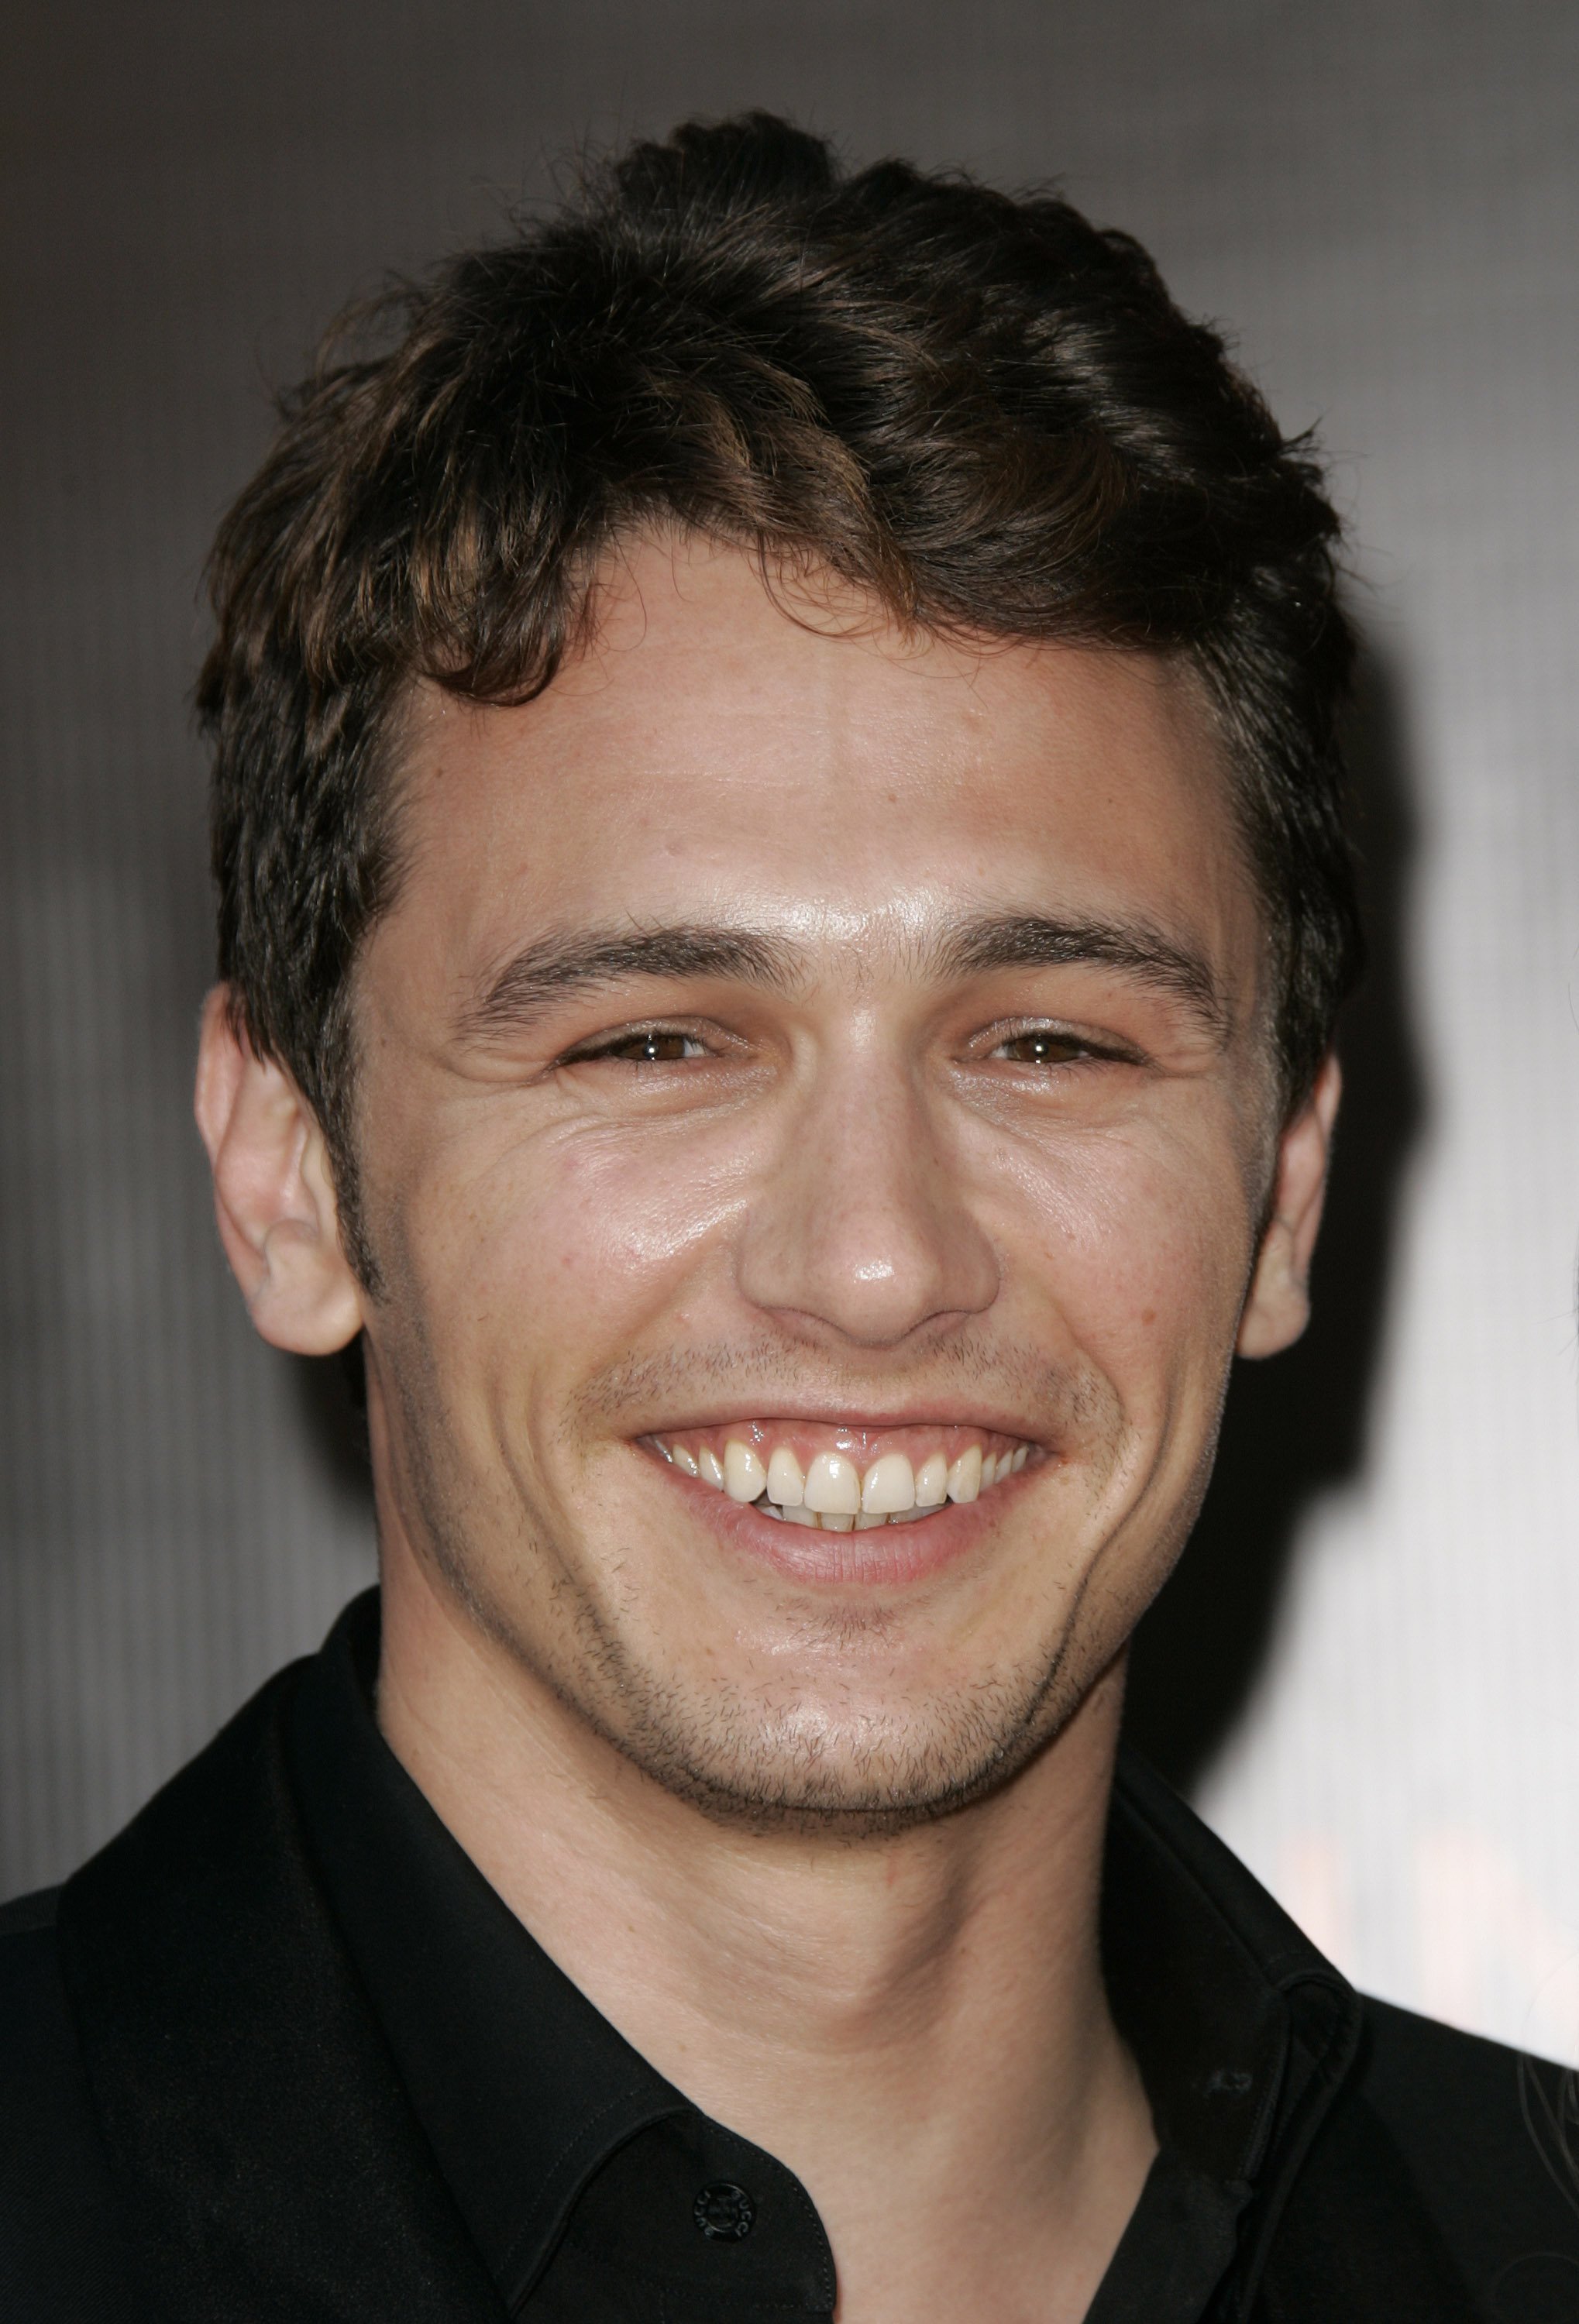 james franco height